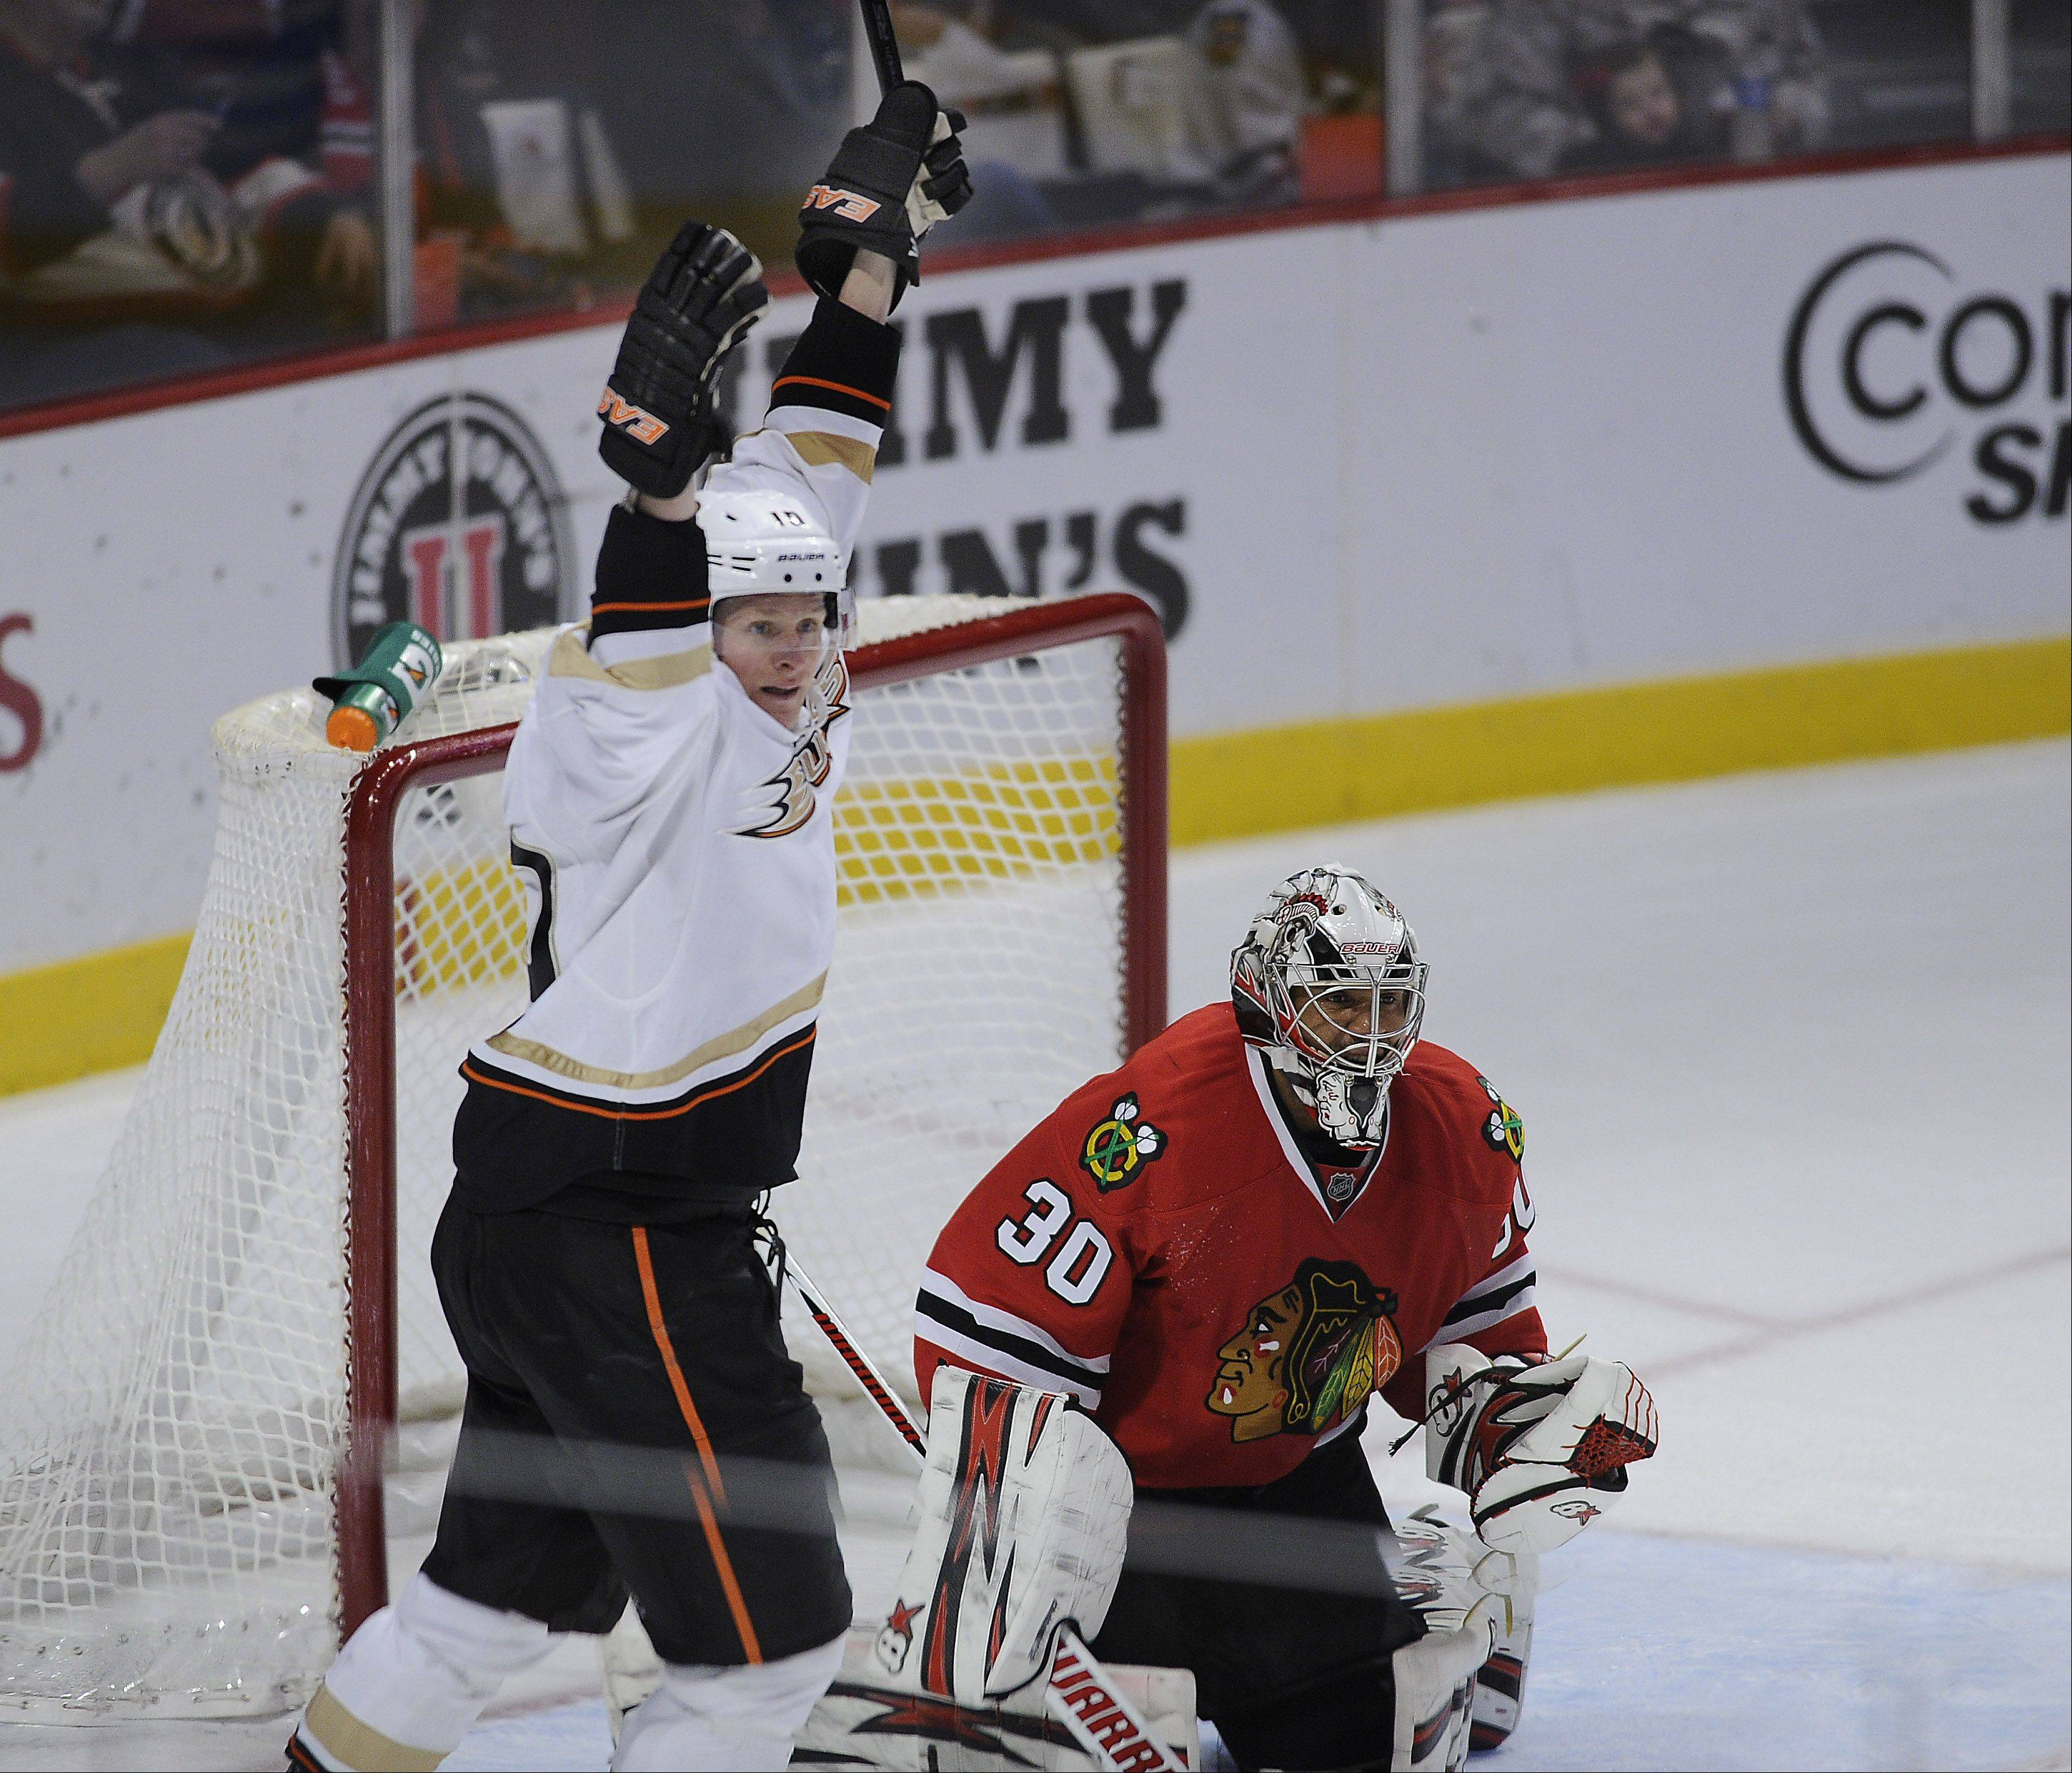 Mark Welsh/mwelsh@dailyherald.comAnaheim's Corey Perry signals goal as Blackhawks goalie Ray Emery can only look on as Anaheim celebrates the go-ahead goal in their victory over the Blackhawks 2-1 at the United Center in Chicago on Friday.